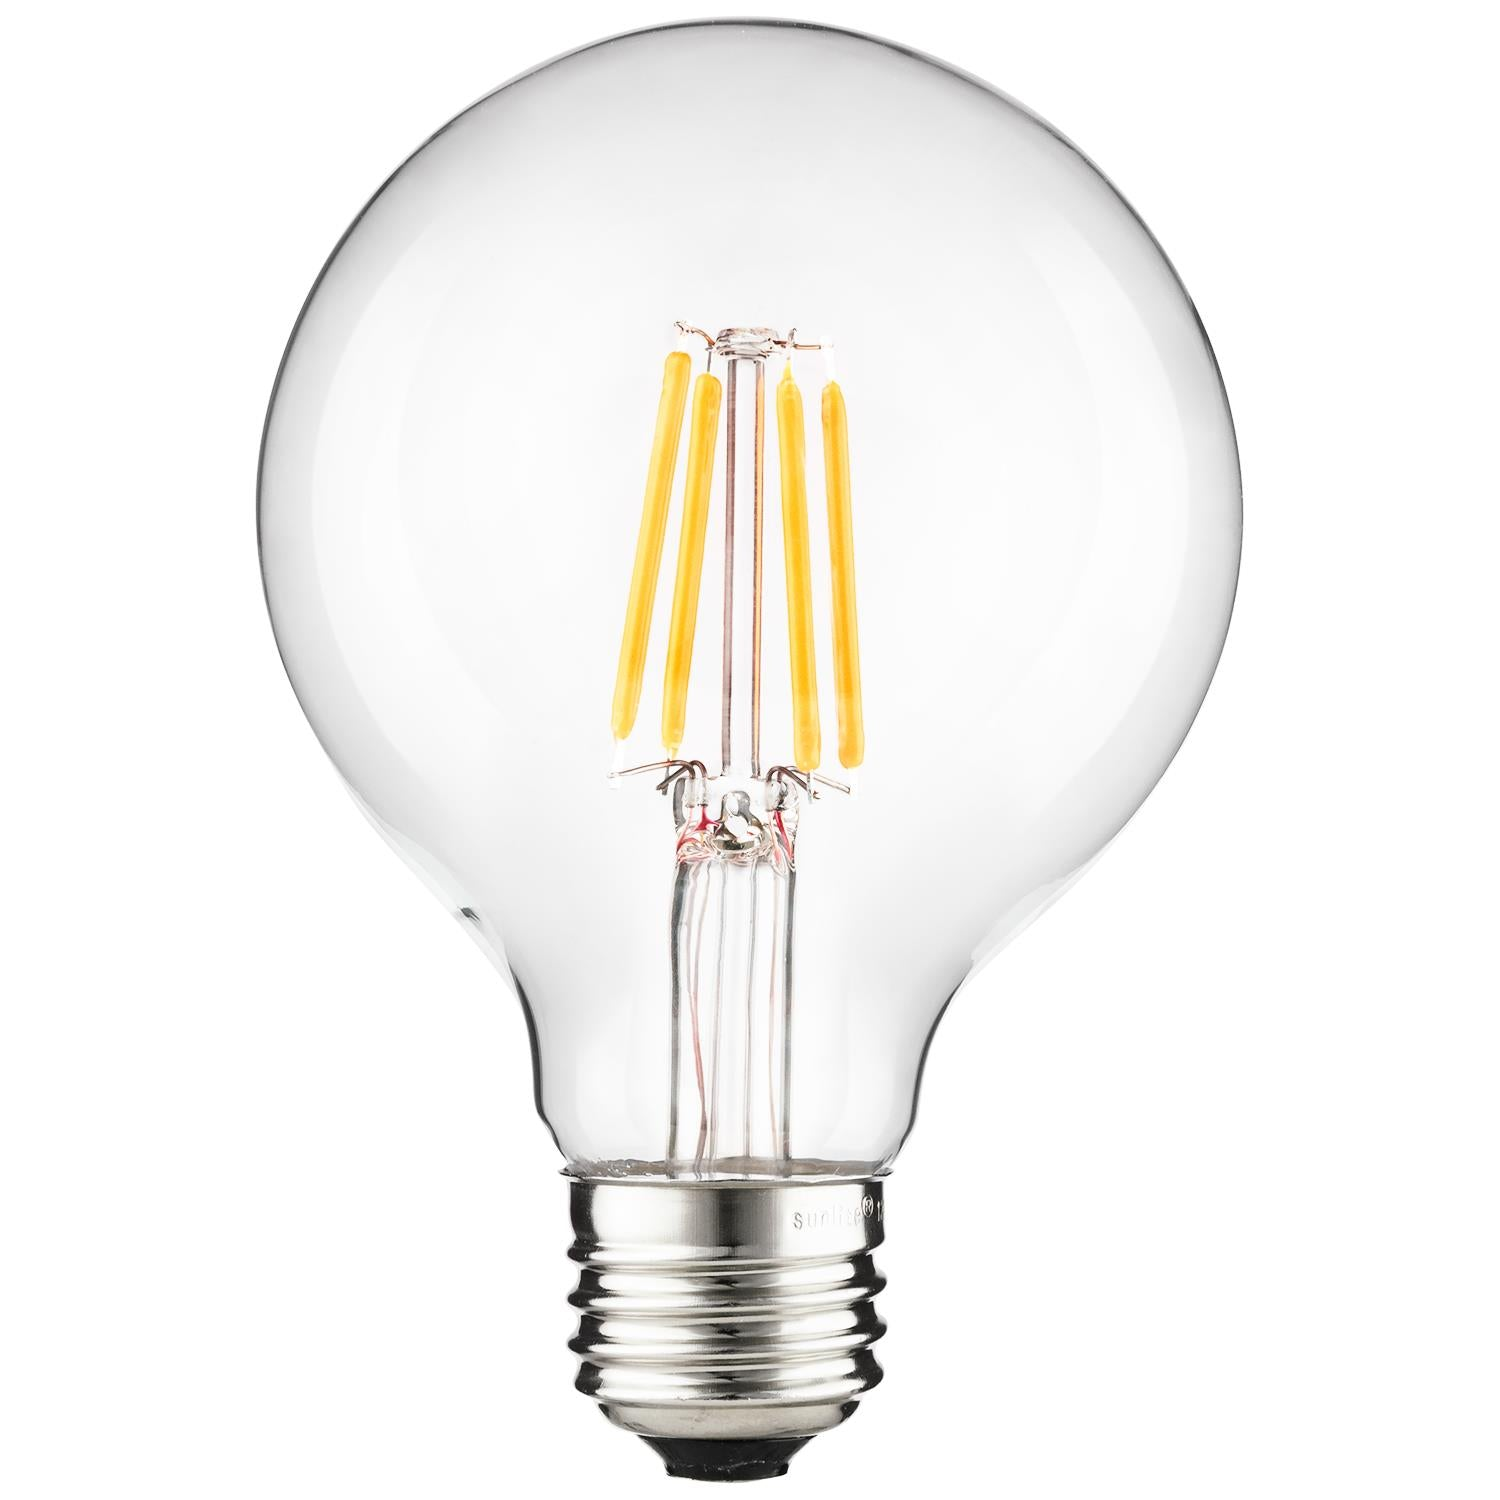 SUNLITE 6w (75w Equivalent) LED Filament G25 Dimmable 2200K Warm White